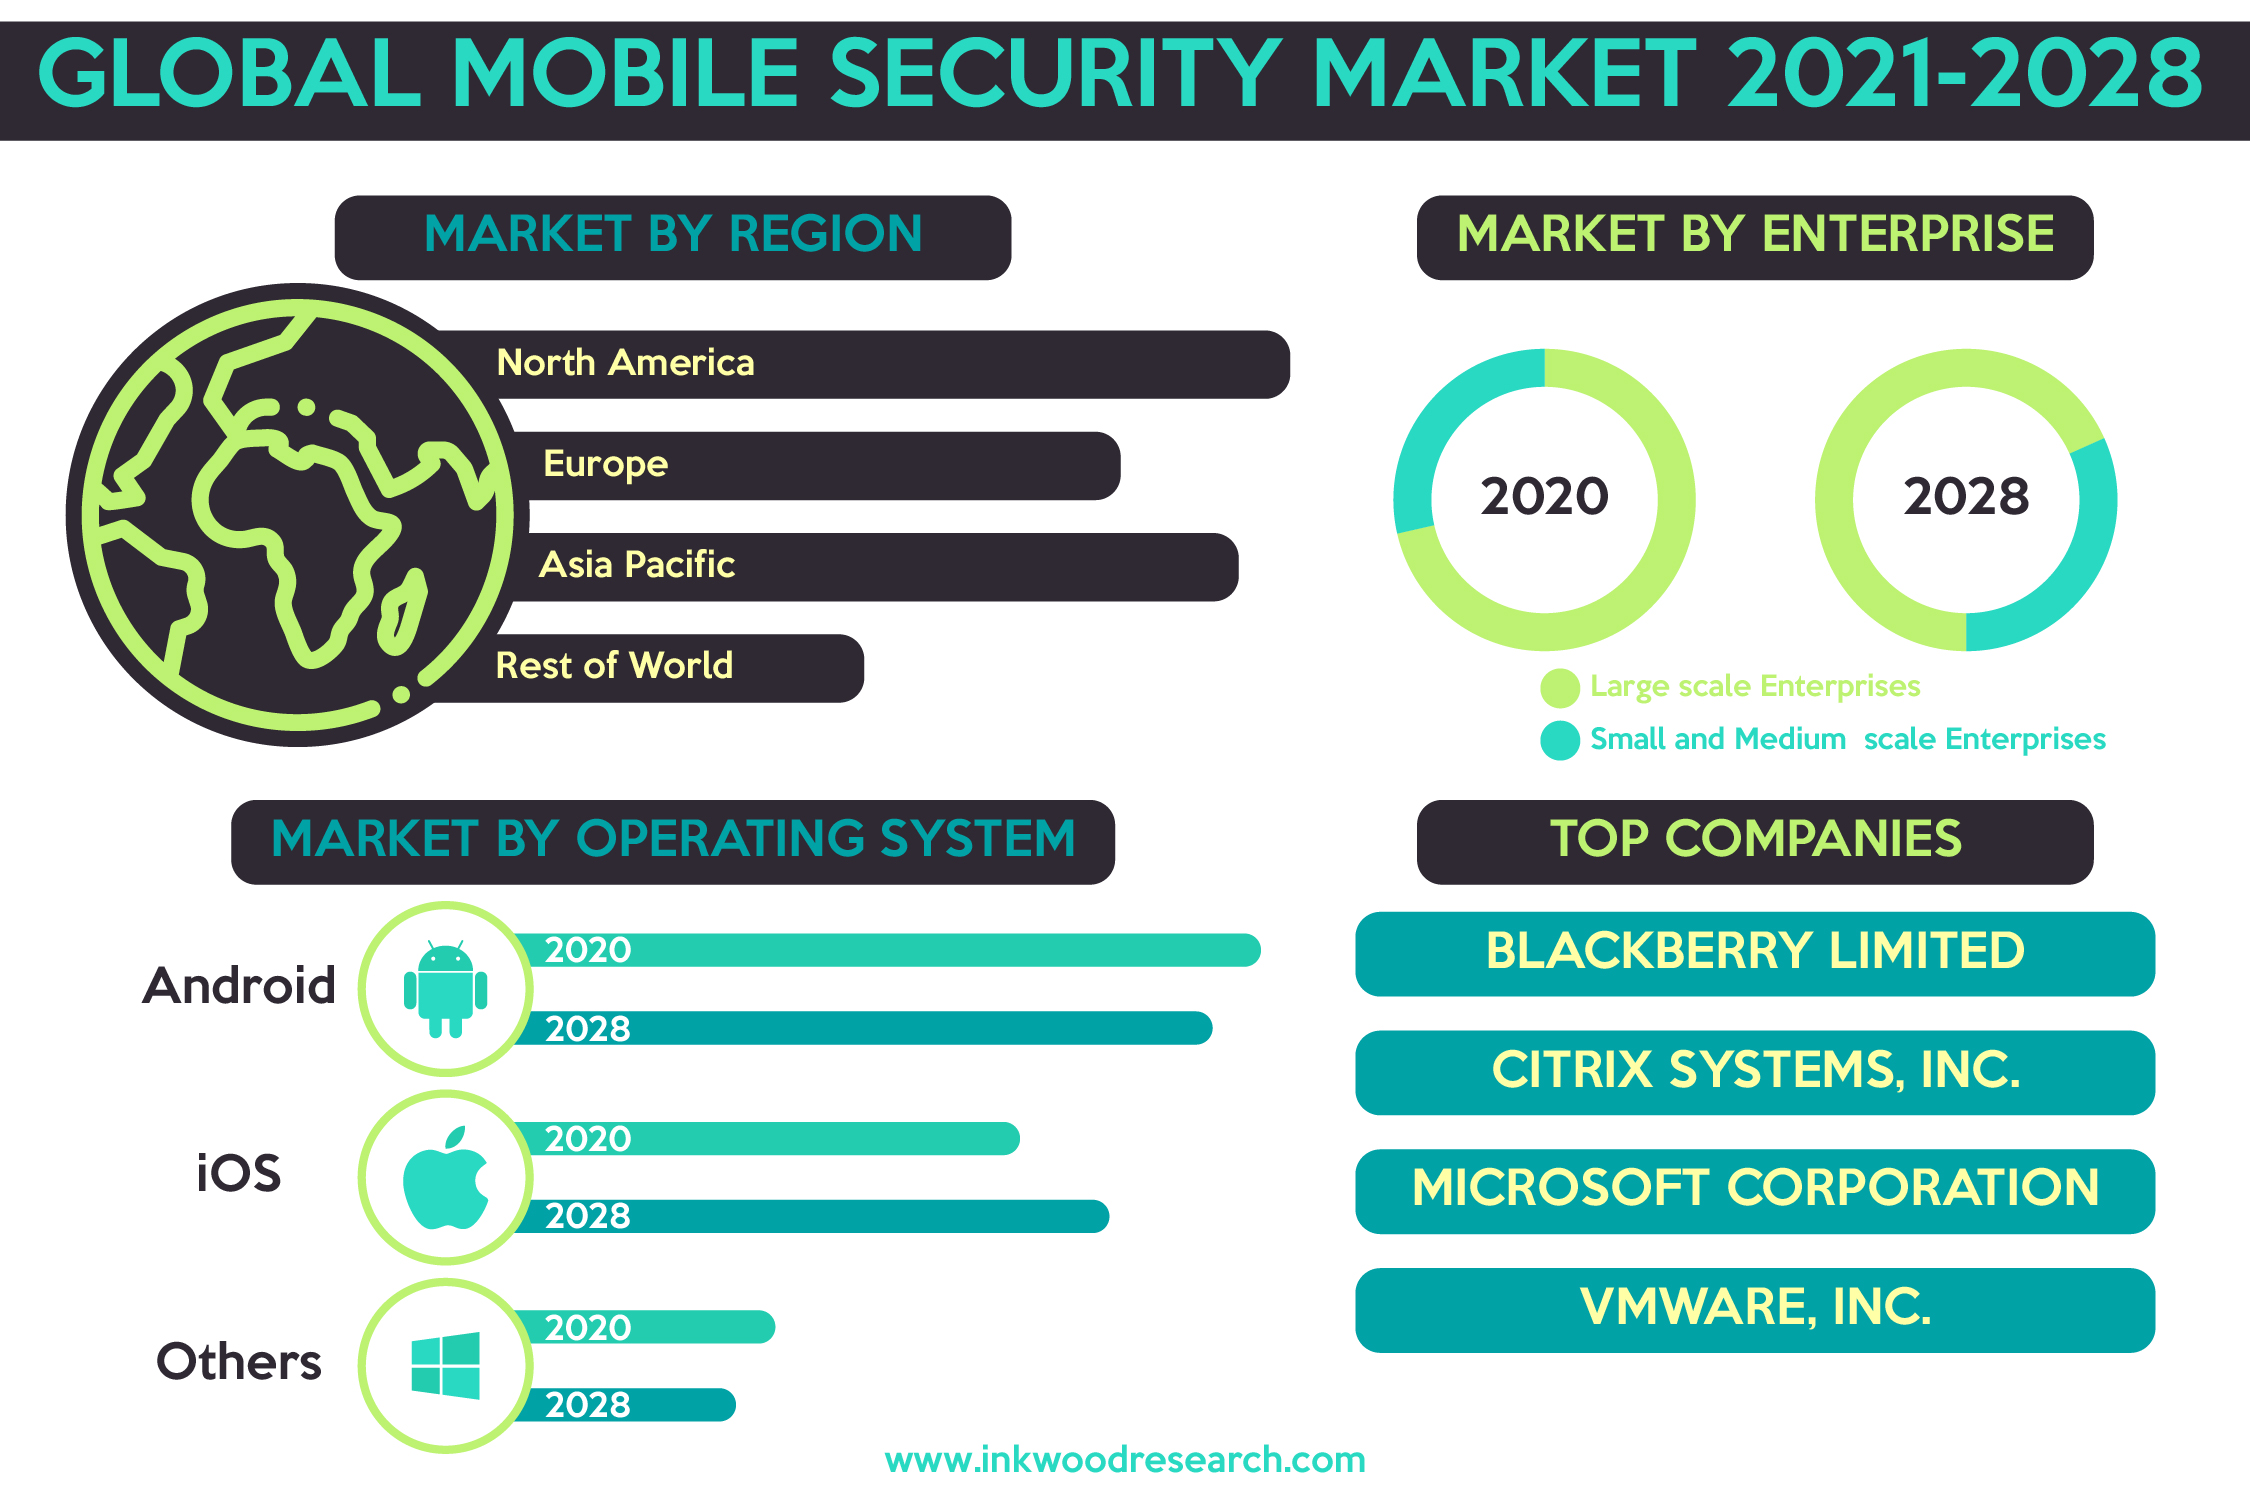 Growing Mobile Payments to push Growth in the Global Mobile Security Market